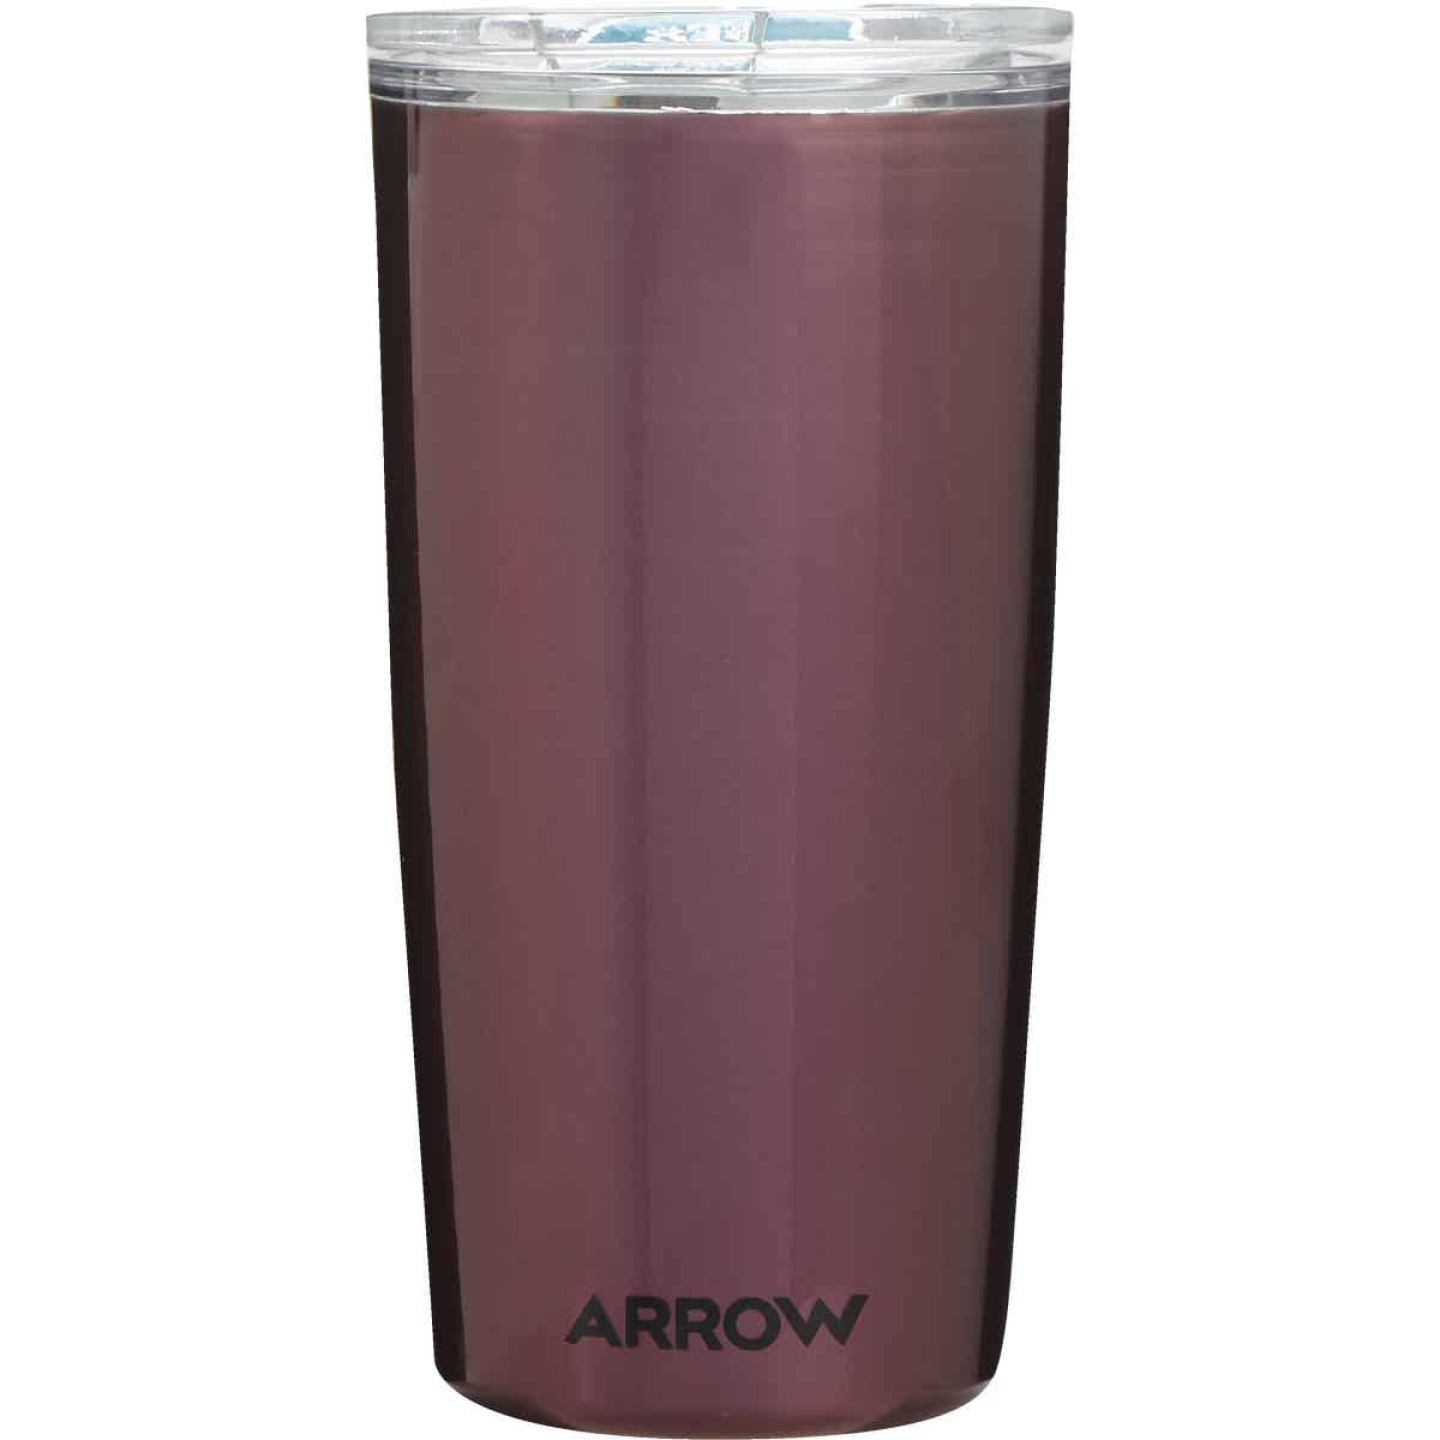 Arrow 18 Oz. Insulated Tumbler with Lid Image 4